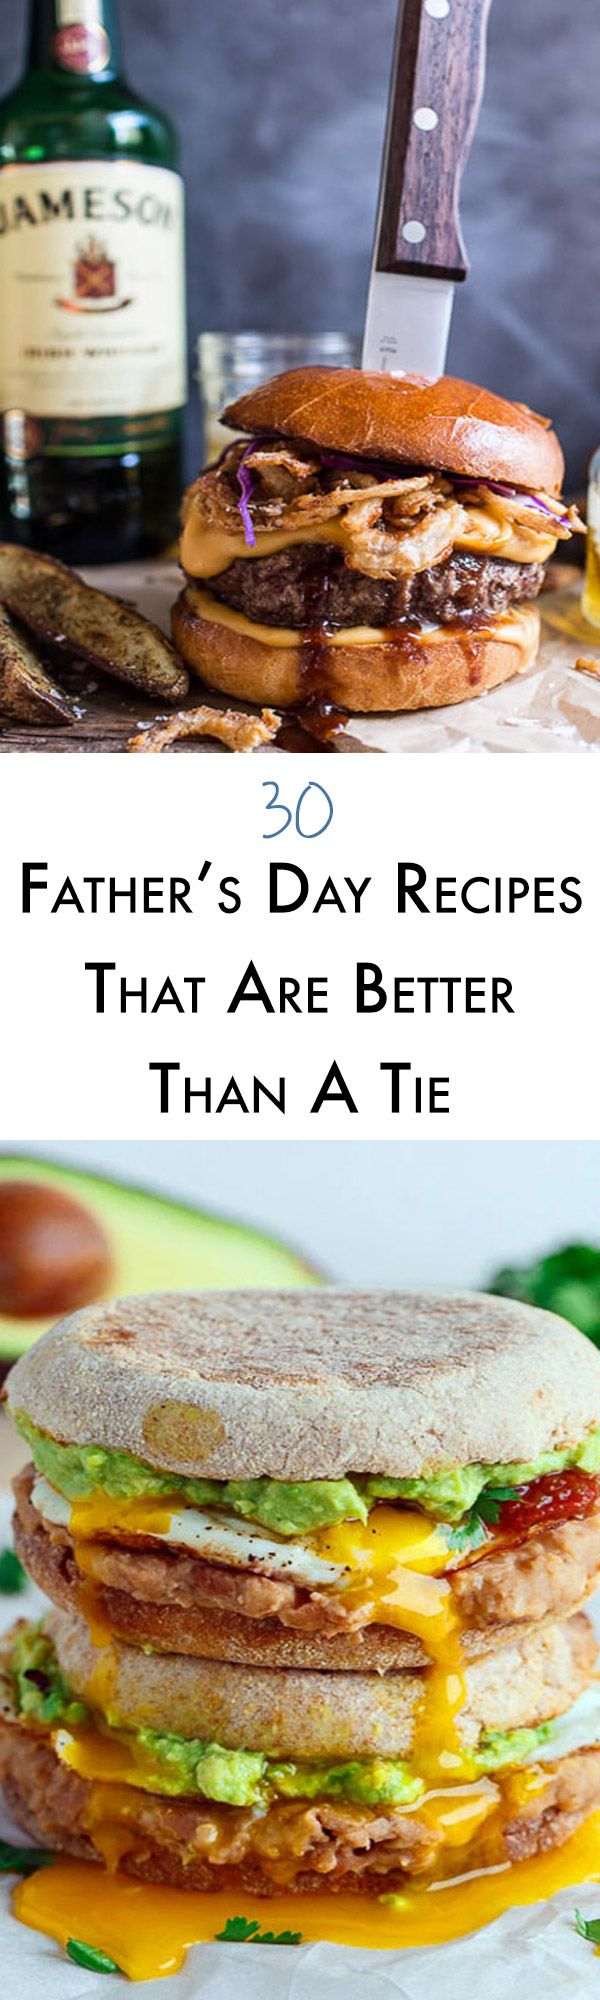 This year instead of giving dad another tie cook him one of these amazing Fathers Day recipes! From drippy egg breakfasts, meat recipes for days and desserts that will make your mouth water, we have something for every special dad in your life.